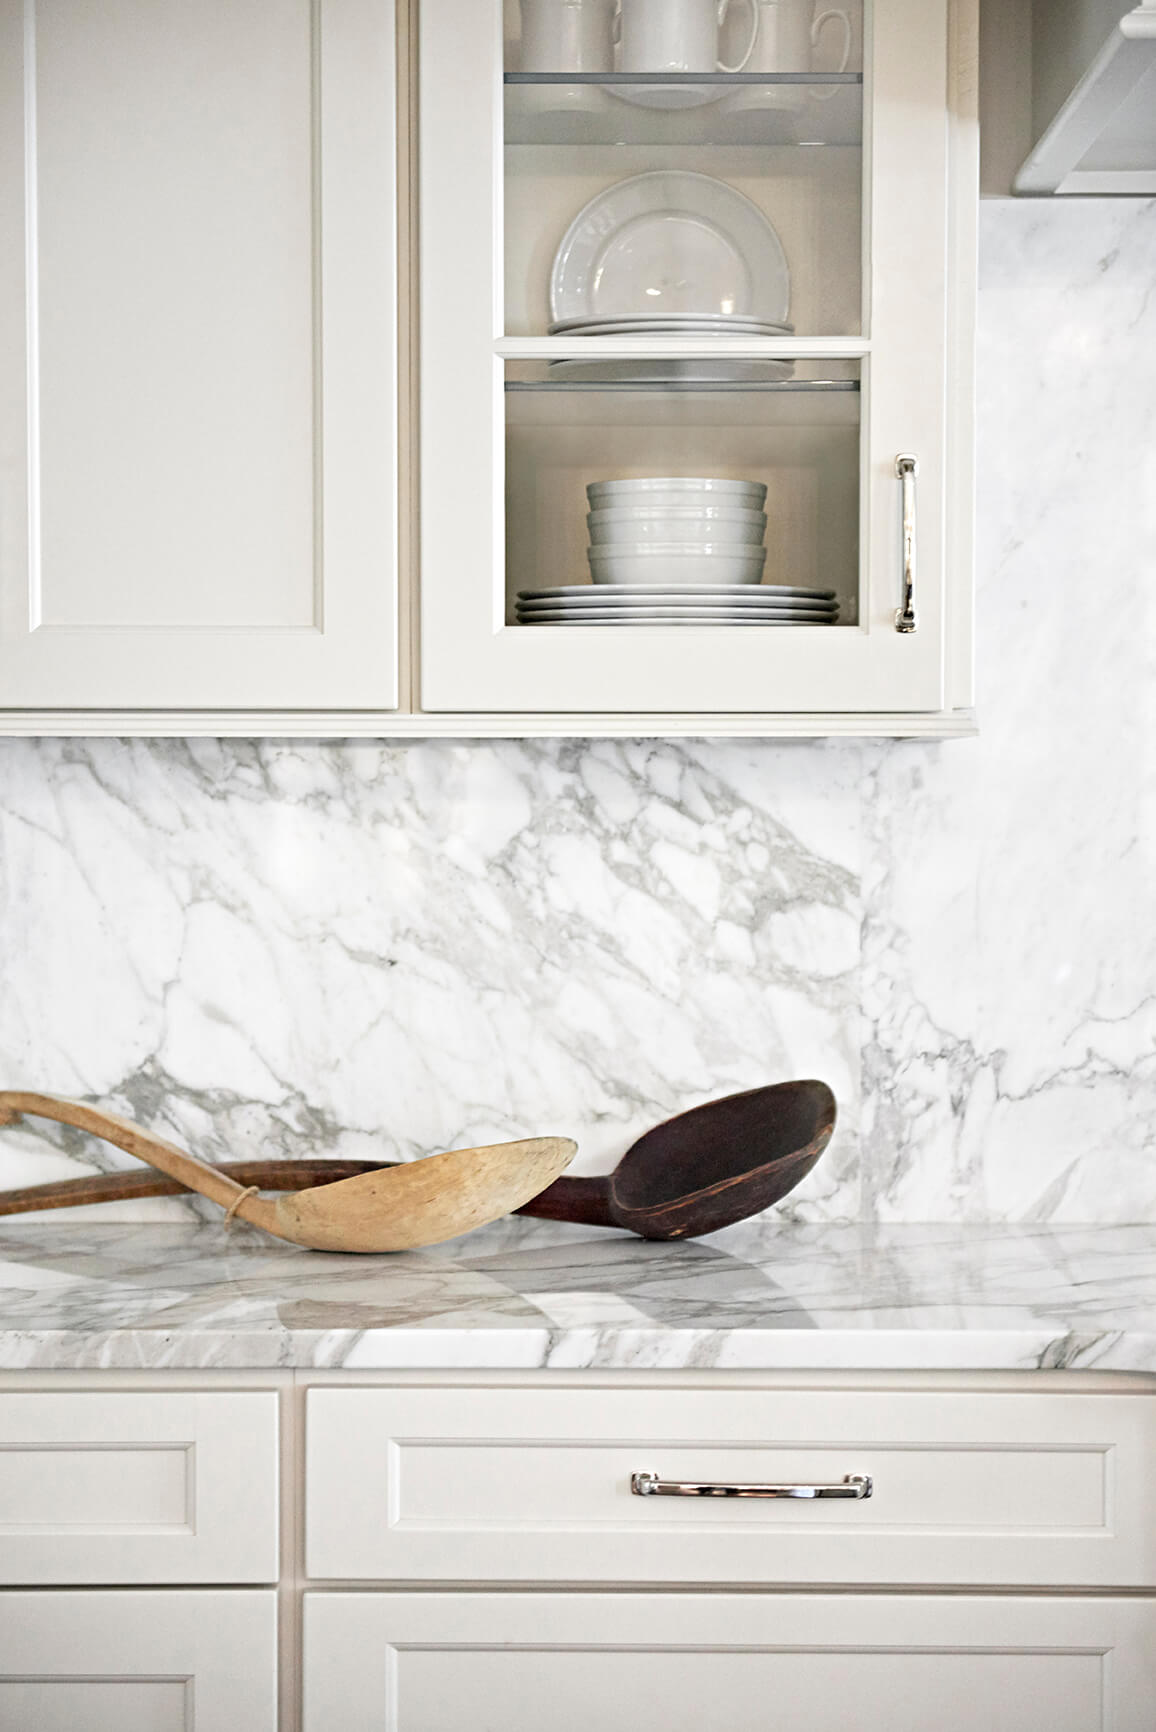 White kitchen cabinet with marble back splash - Rustic Contemporary Bureau Interior Design Nashville TN